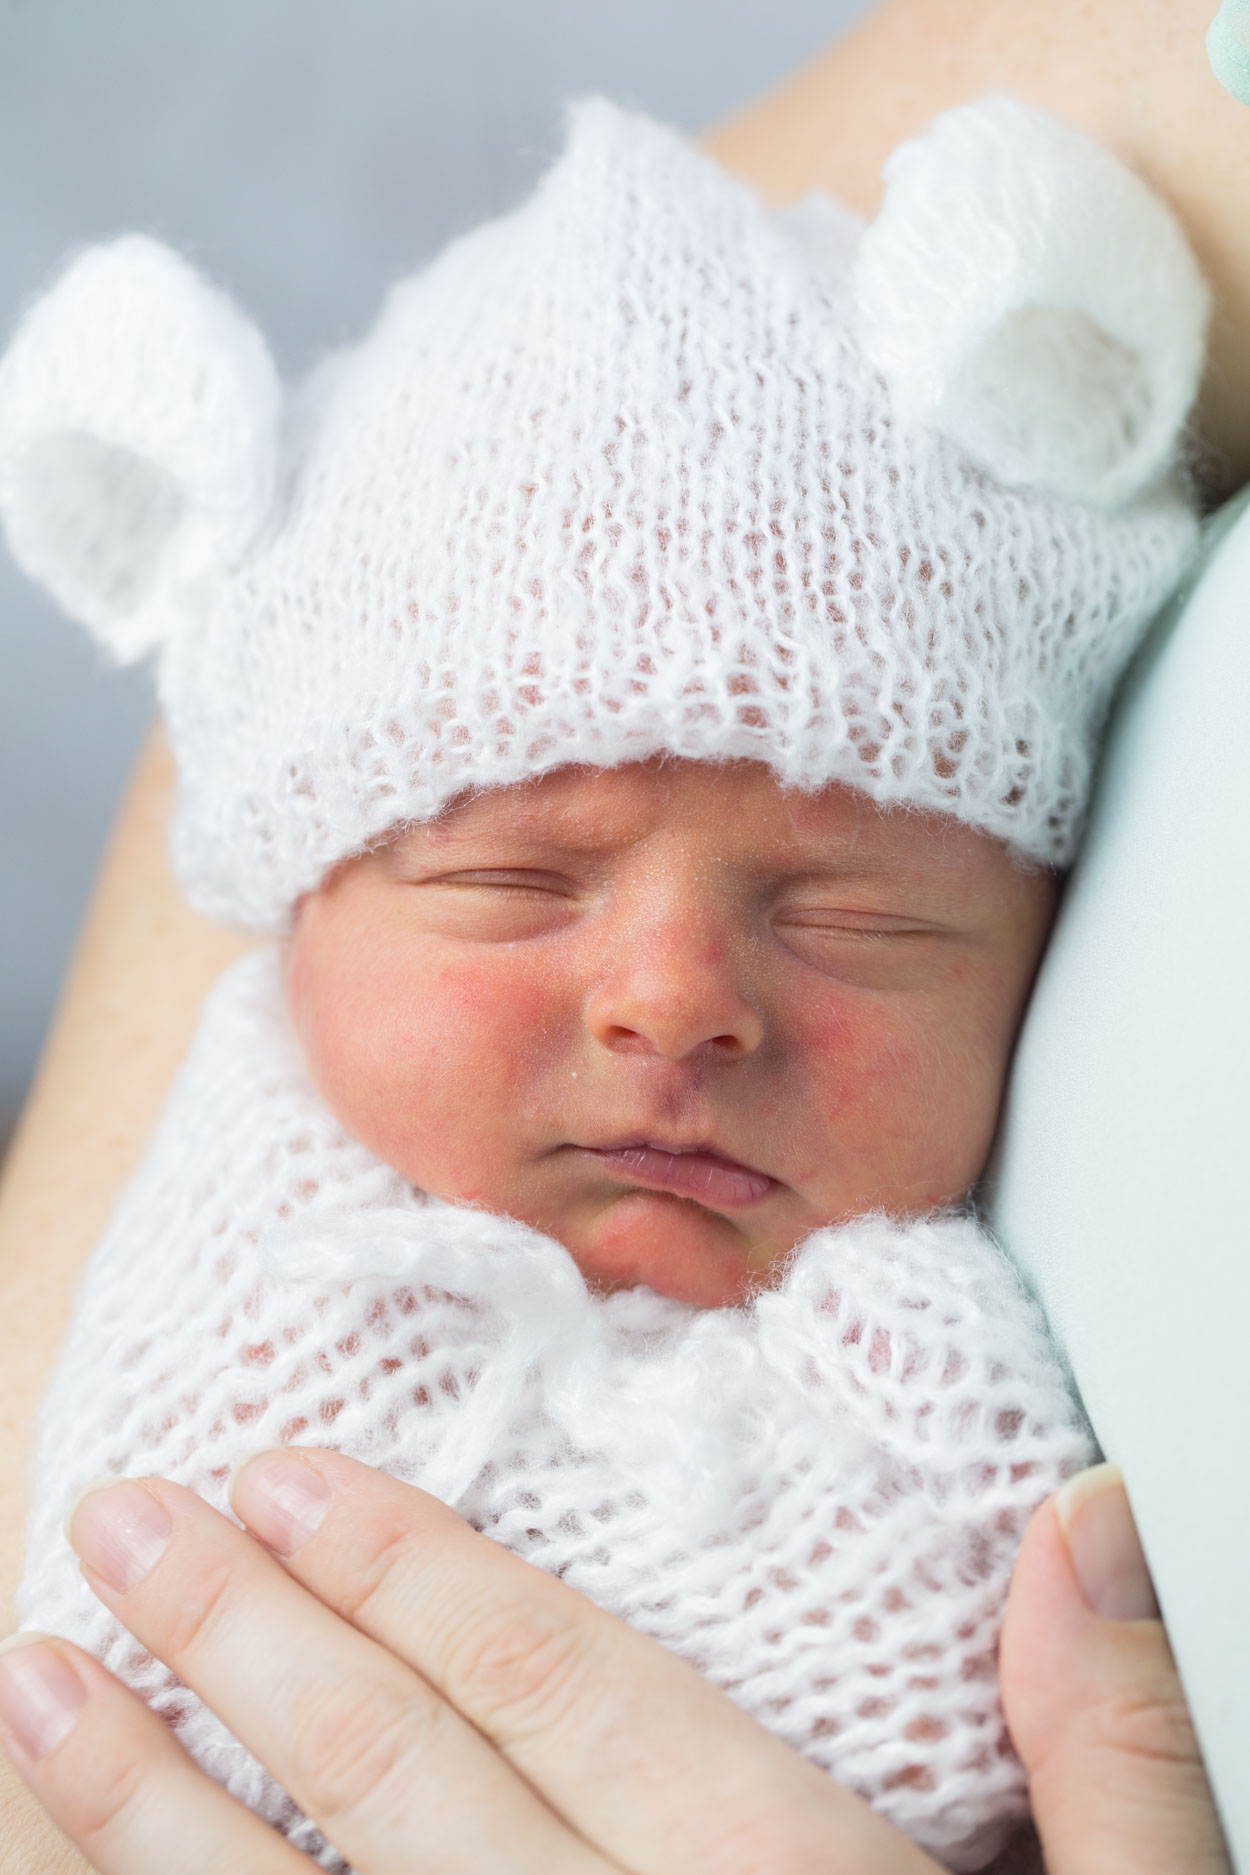 Baby swaddled wearing a hat and sack.